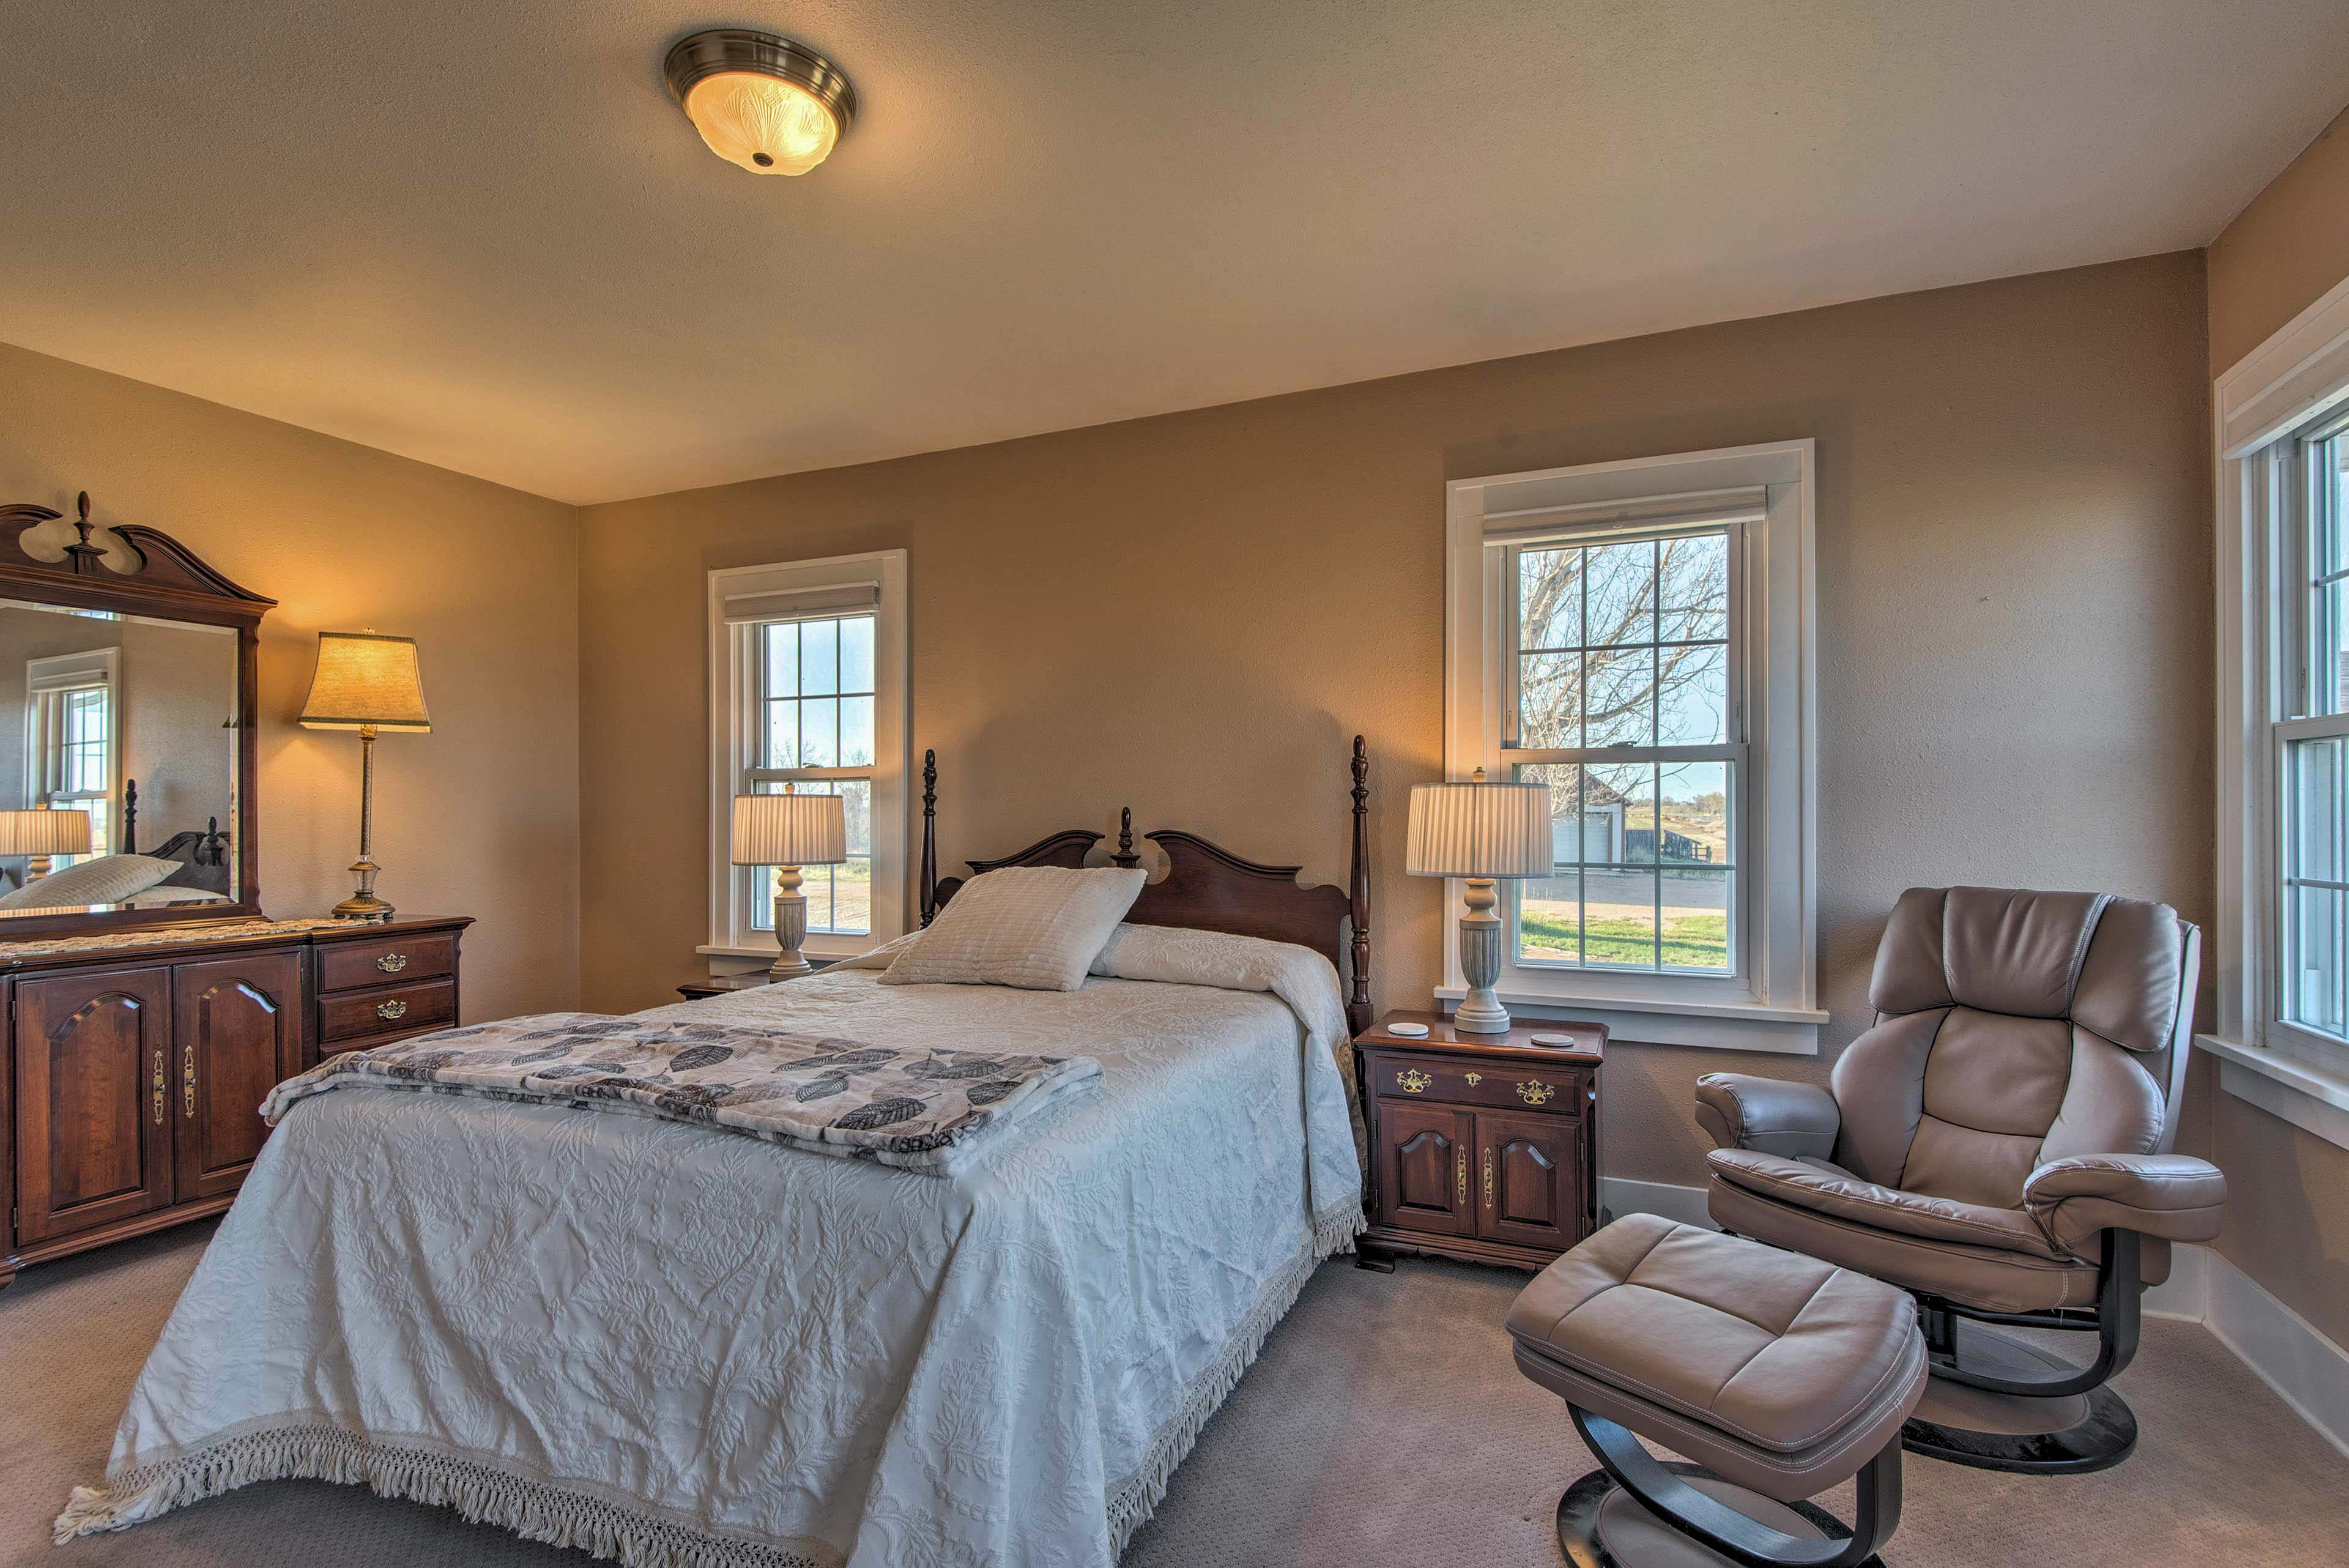 Take solace in the master bedroom for some privacy.